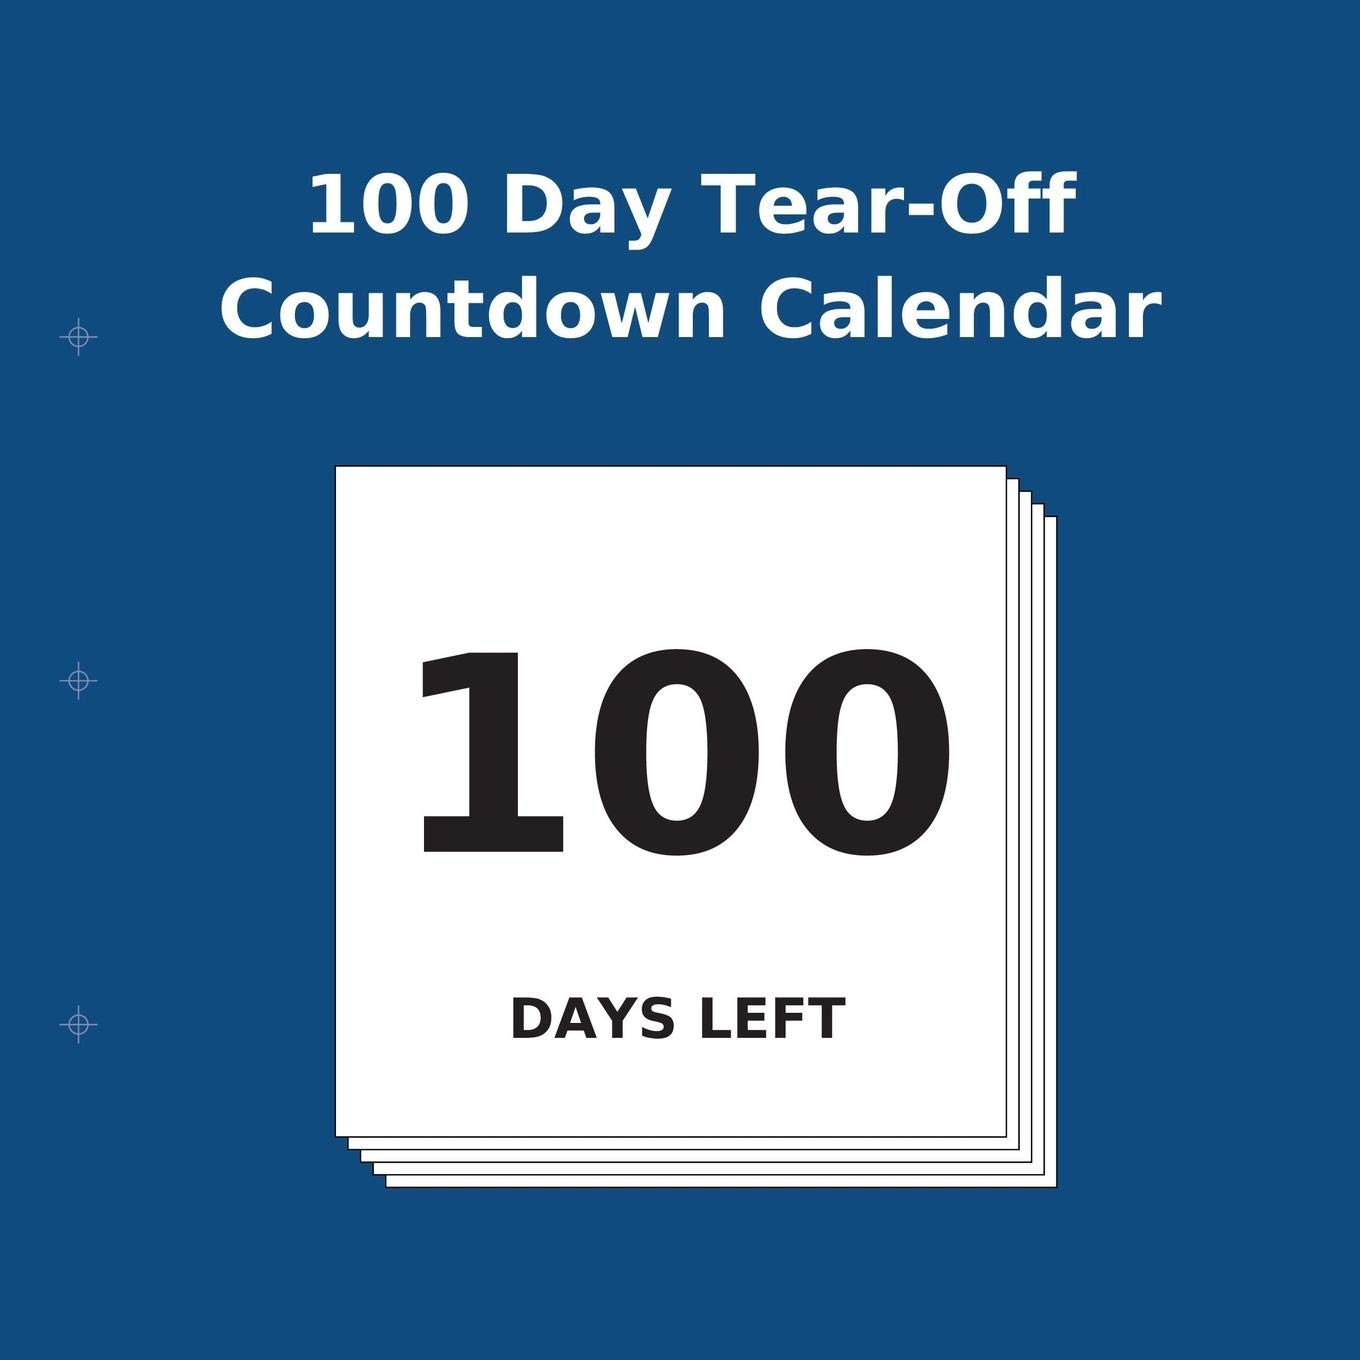 picture relating to Retirement Countdown Calendar Printable named : 100 Working day Tear-Off Countdown Calendar